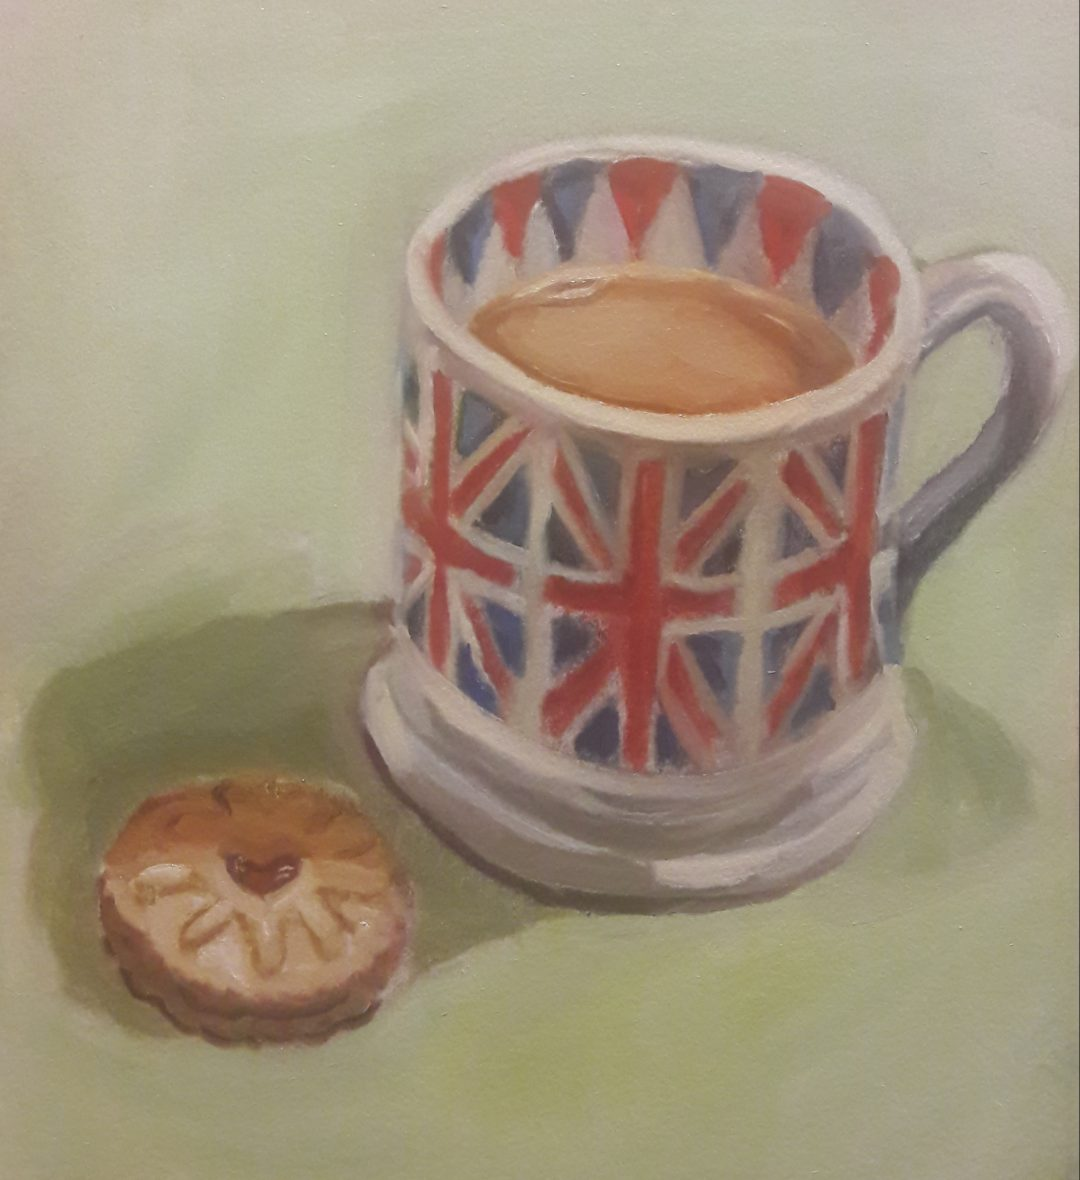 Cuppa and a biscuit